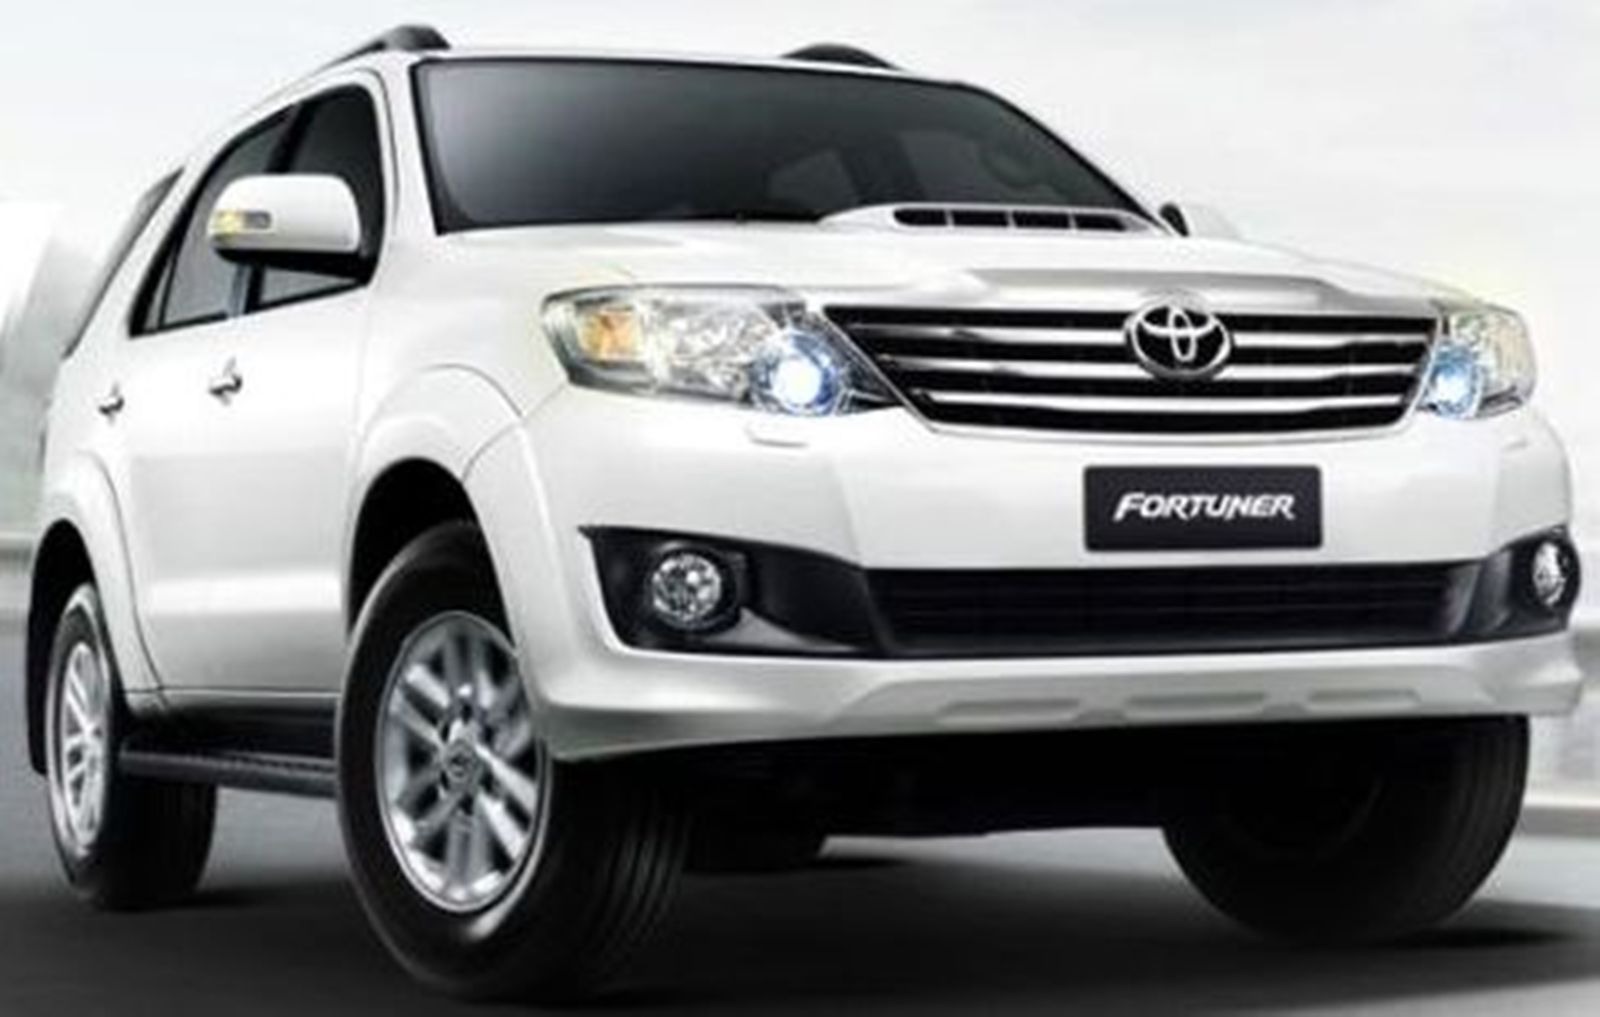 Toyota Fortuner 2013 Price - Viewing Gallery